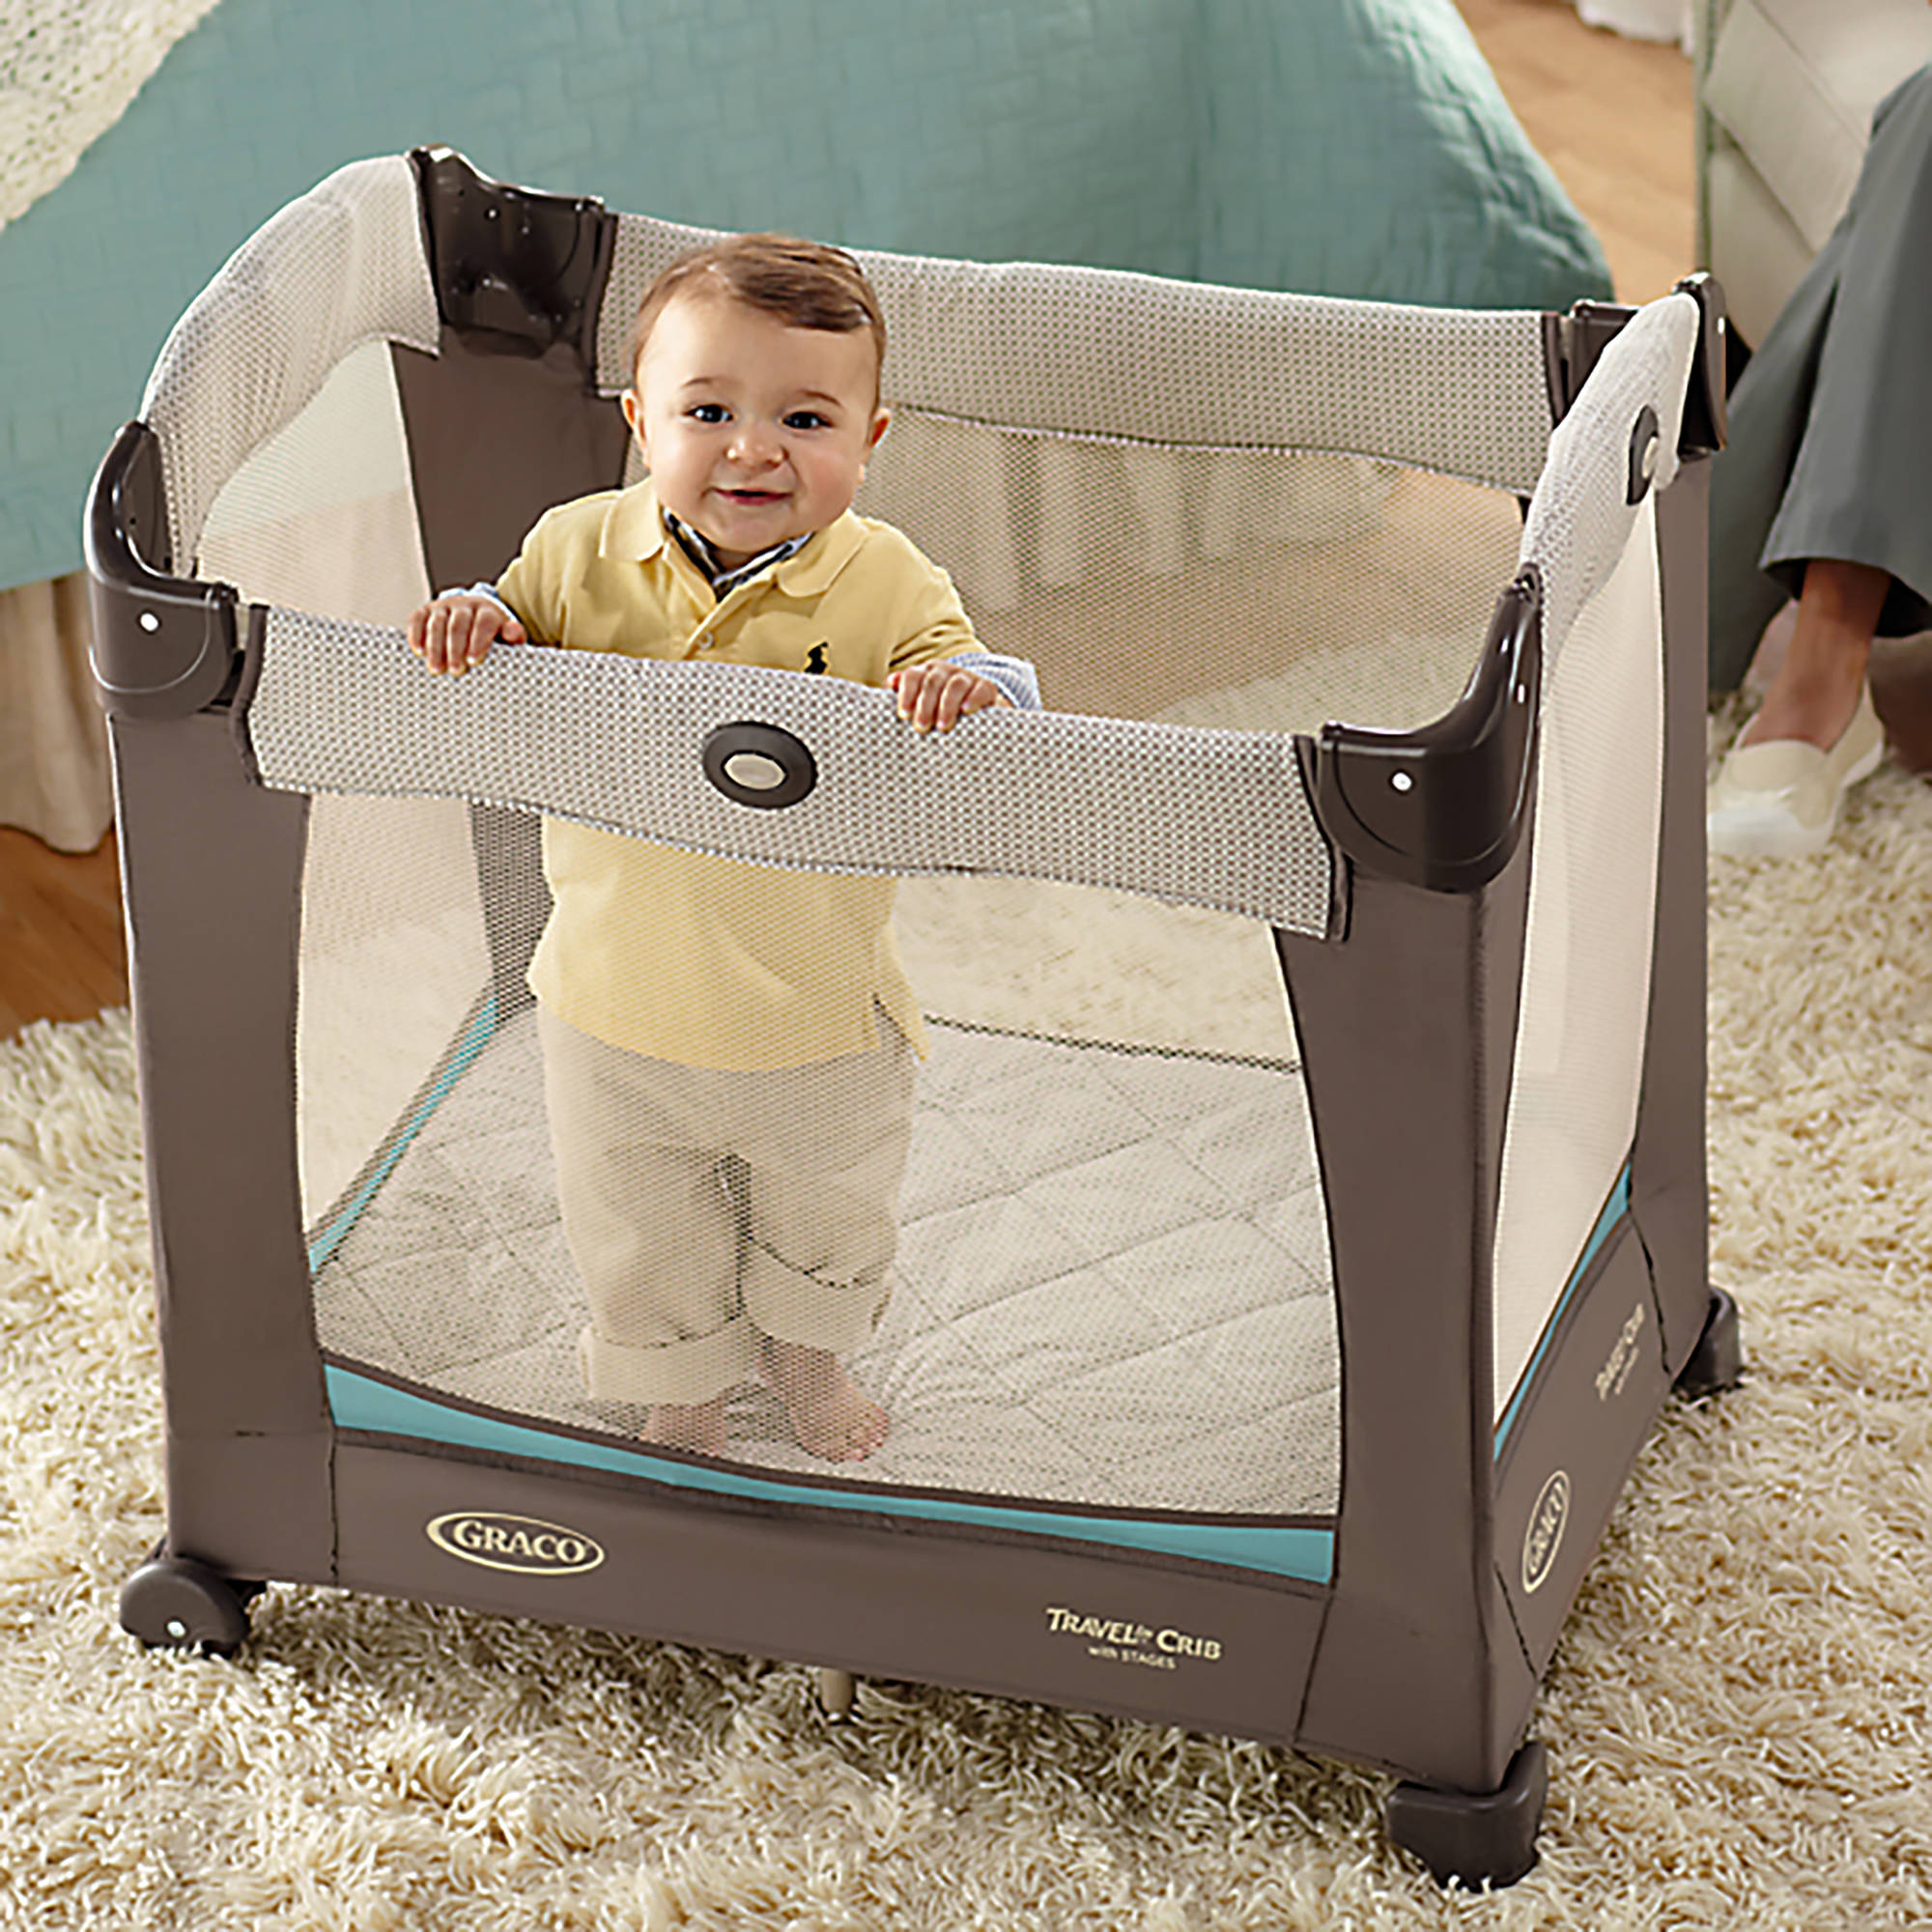 Baby bed vs bassinet - Baby Bed Vs Bassinet 16